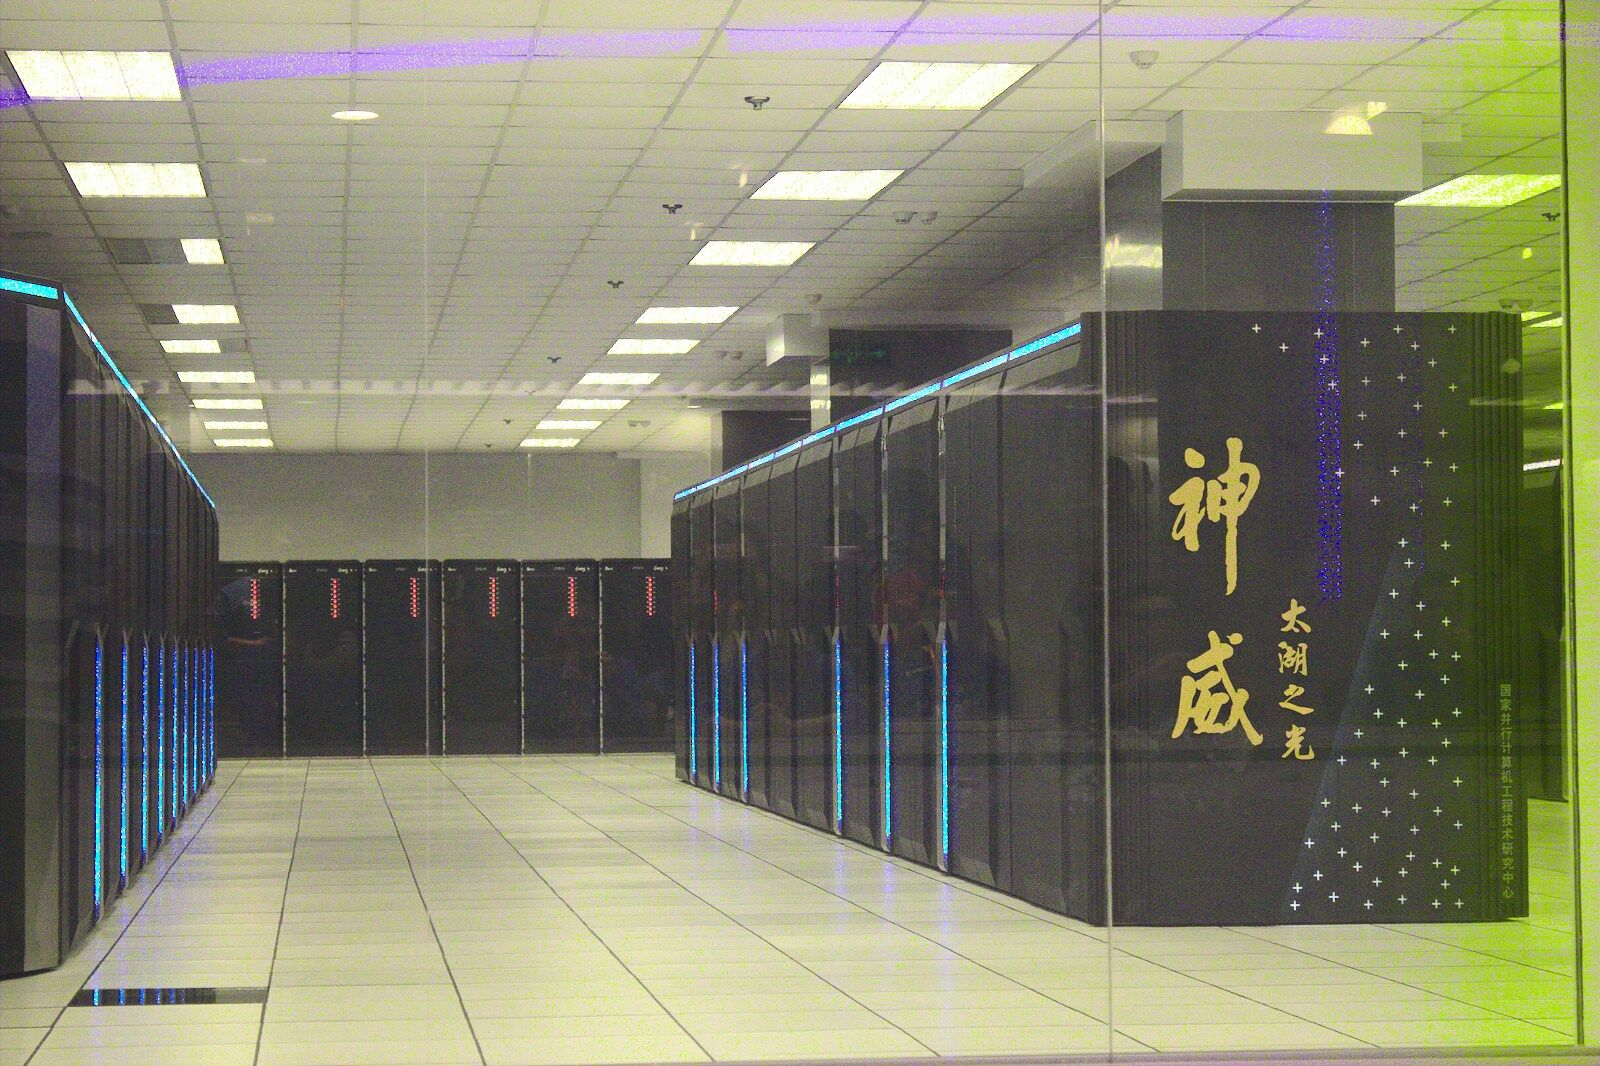 Behind the scene of TOP-1 supercomputer - 2